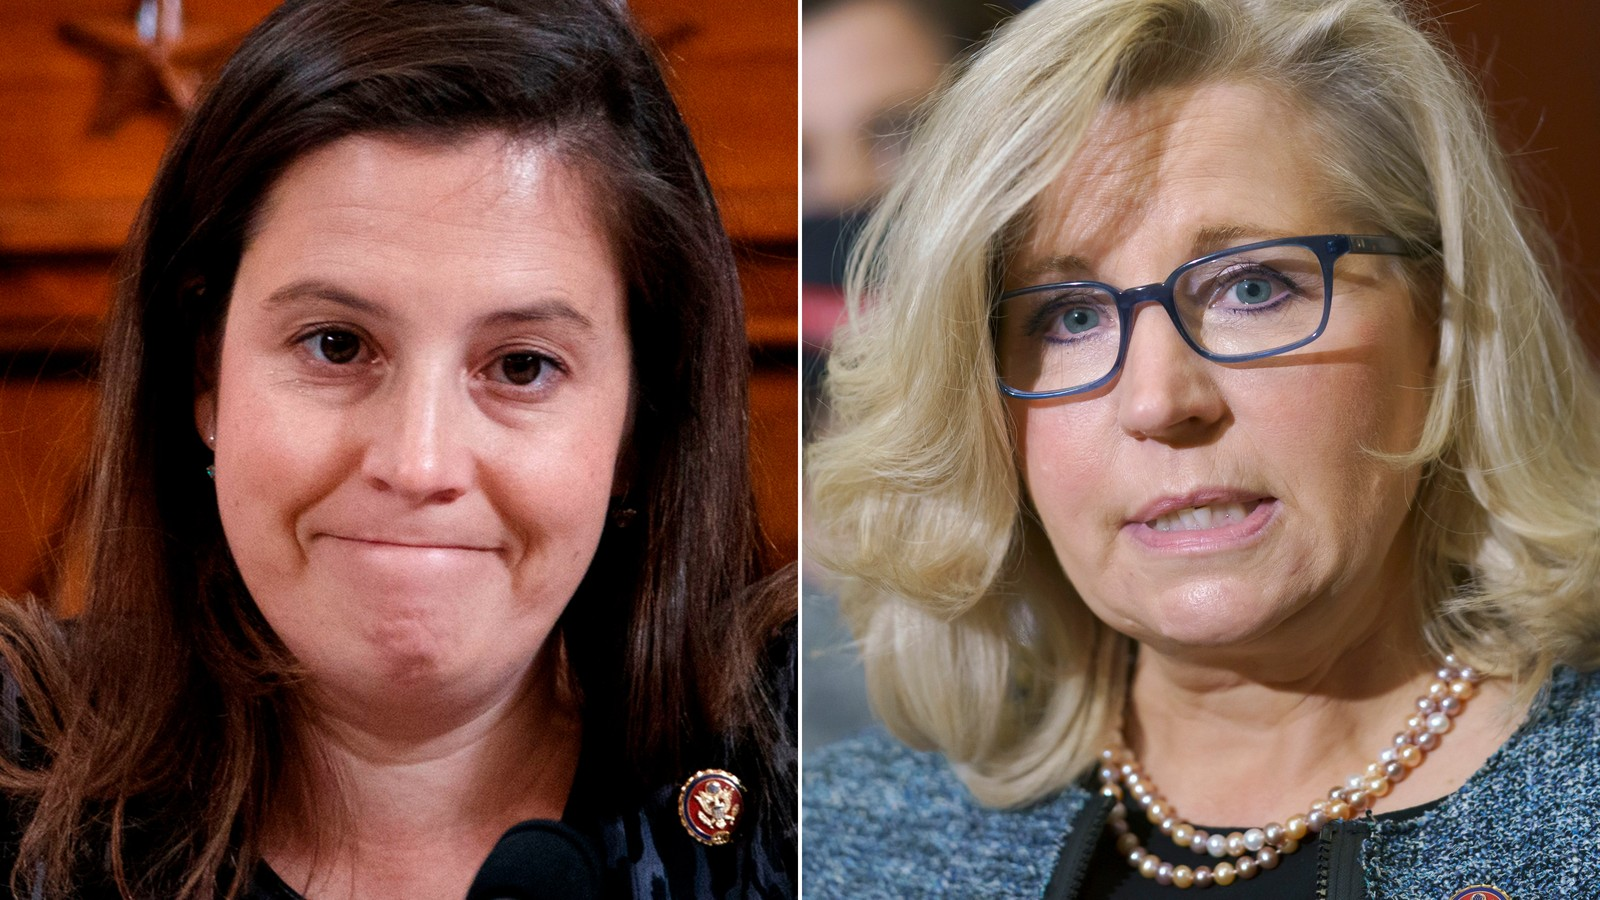 Elise Stefanik moves to quickly consolidate GOP support as Liz Cheney replacement: 'The fix is in'